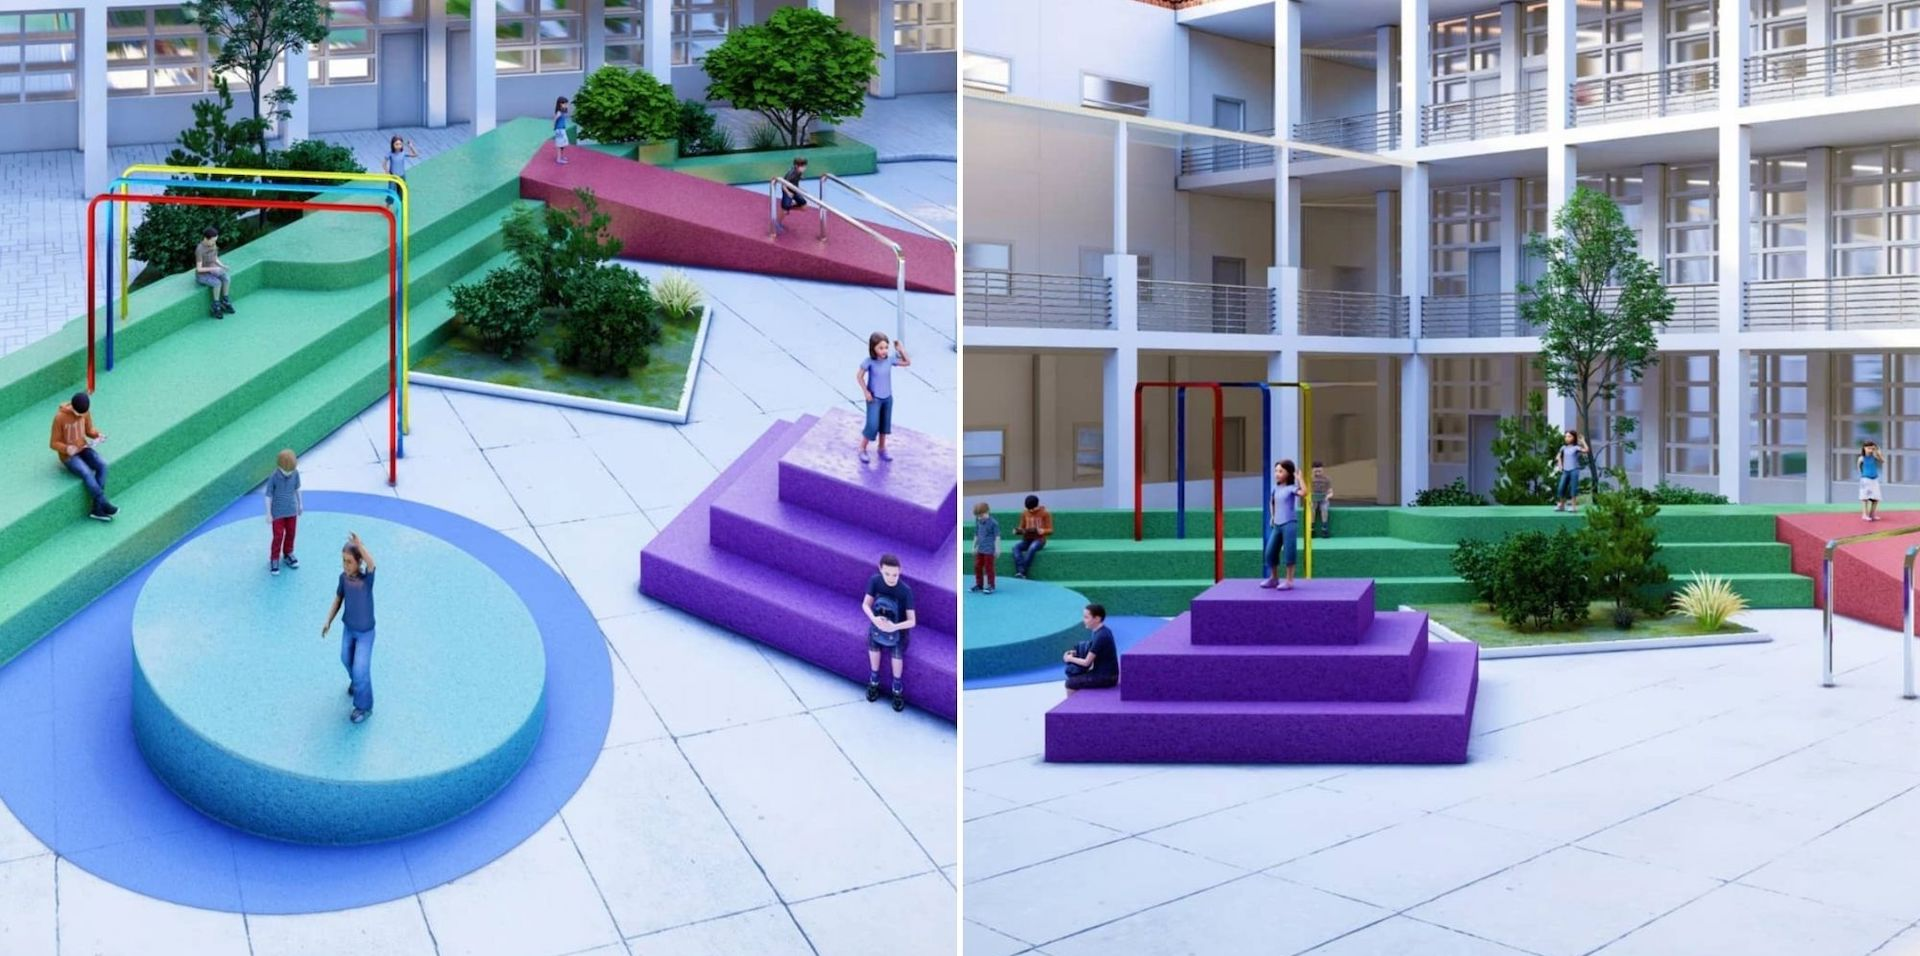 Renderings for soon-to-be constructed playgrounds from the Let's Play initiative. Photos © Let's Play